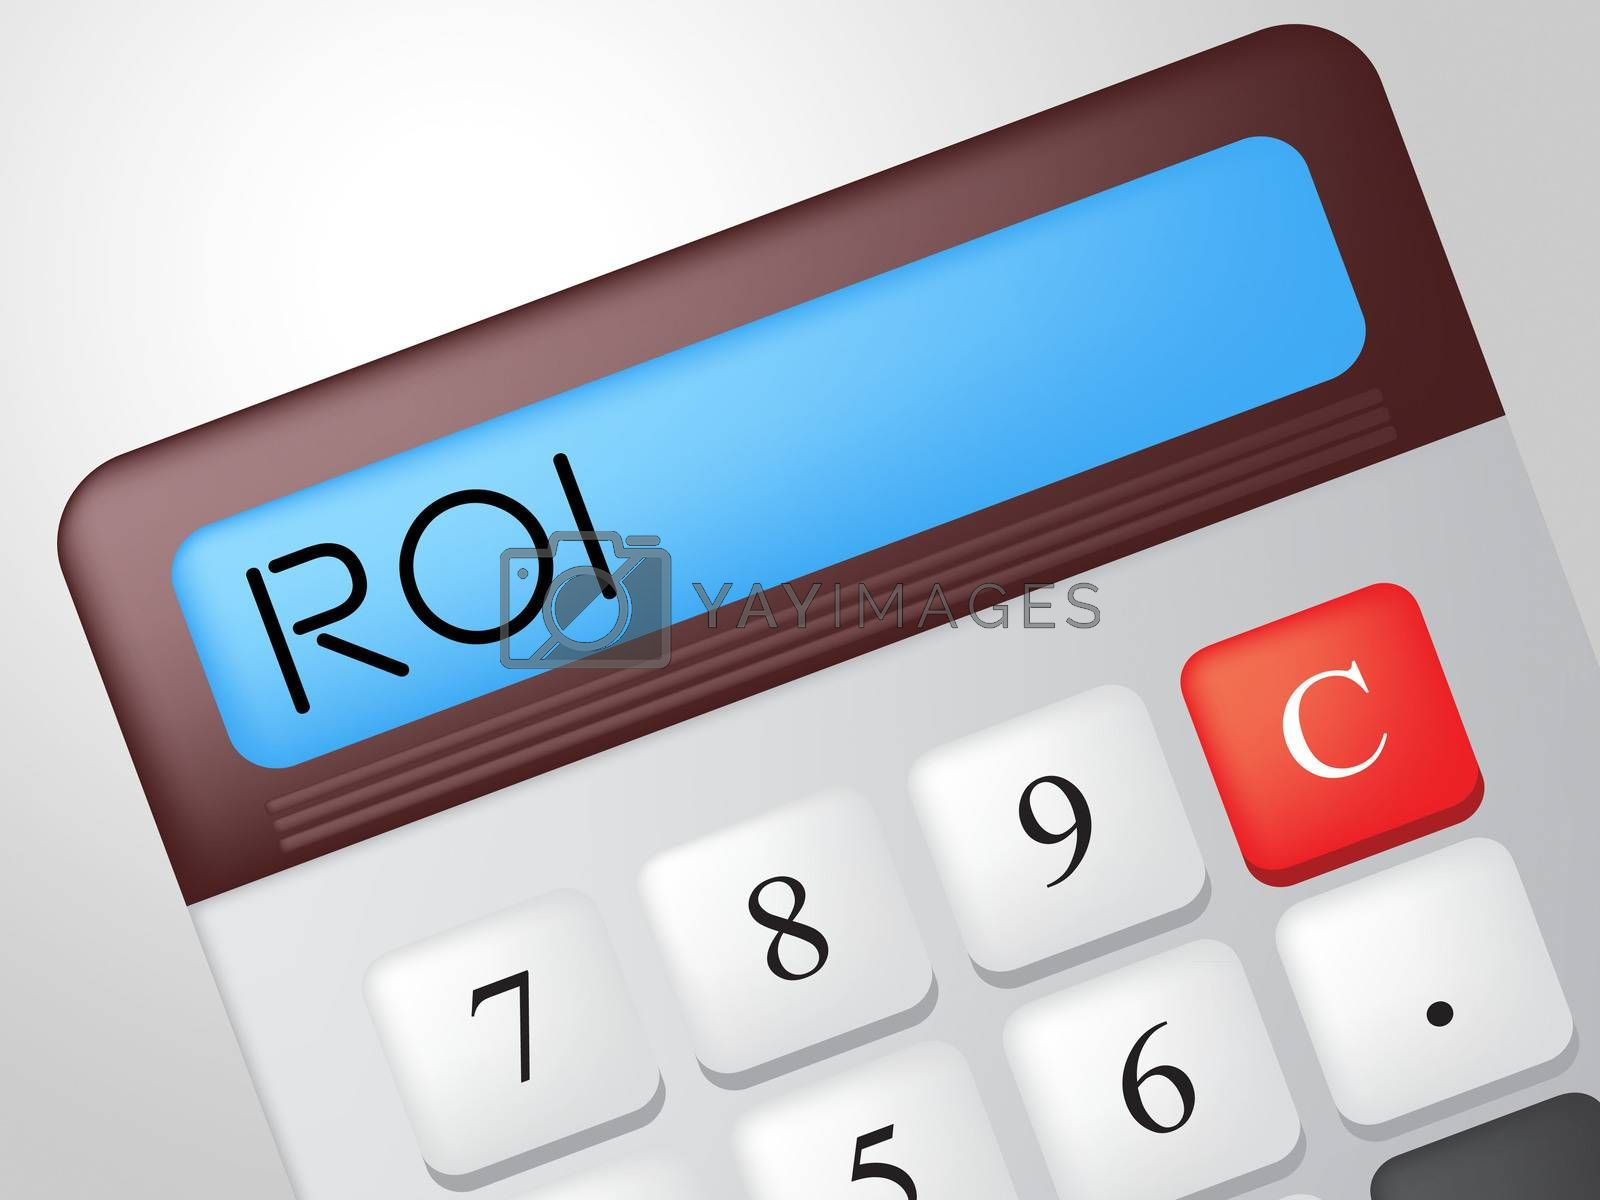 Roi Calculator Shows Return On Investment And Calculate by stuartmiles